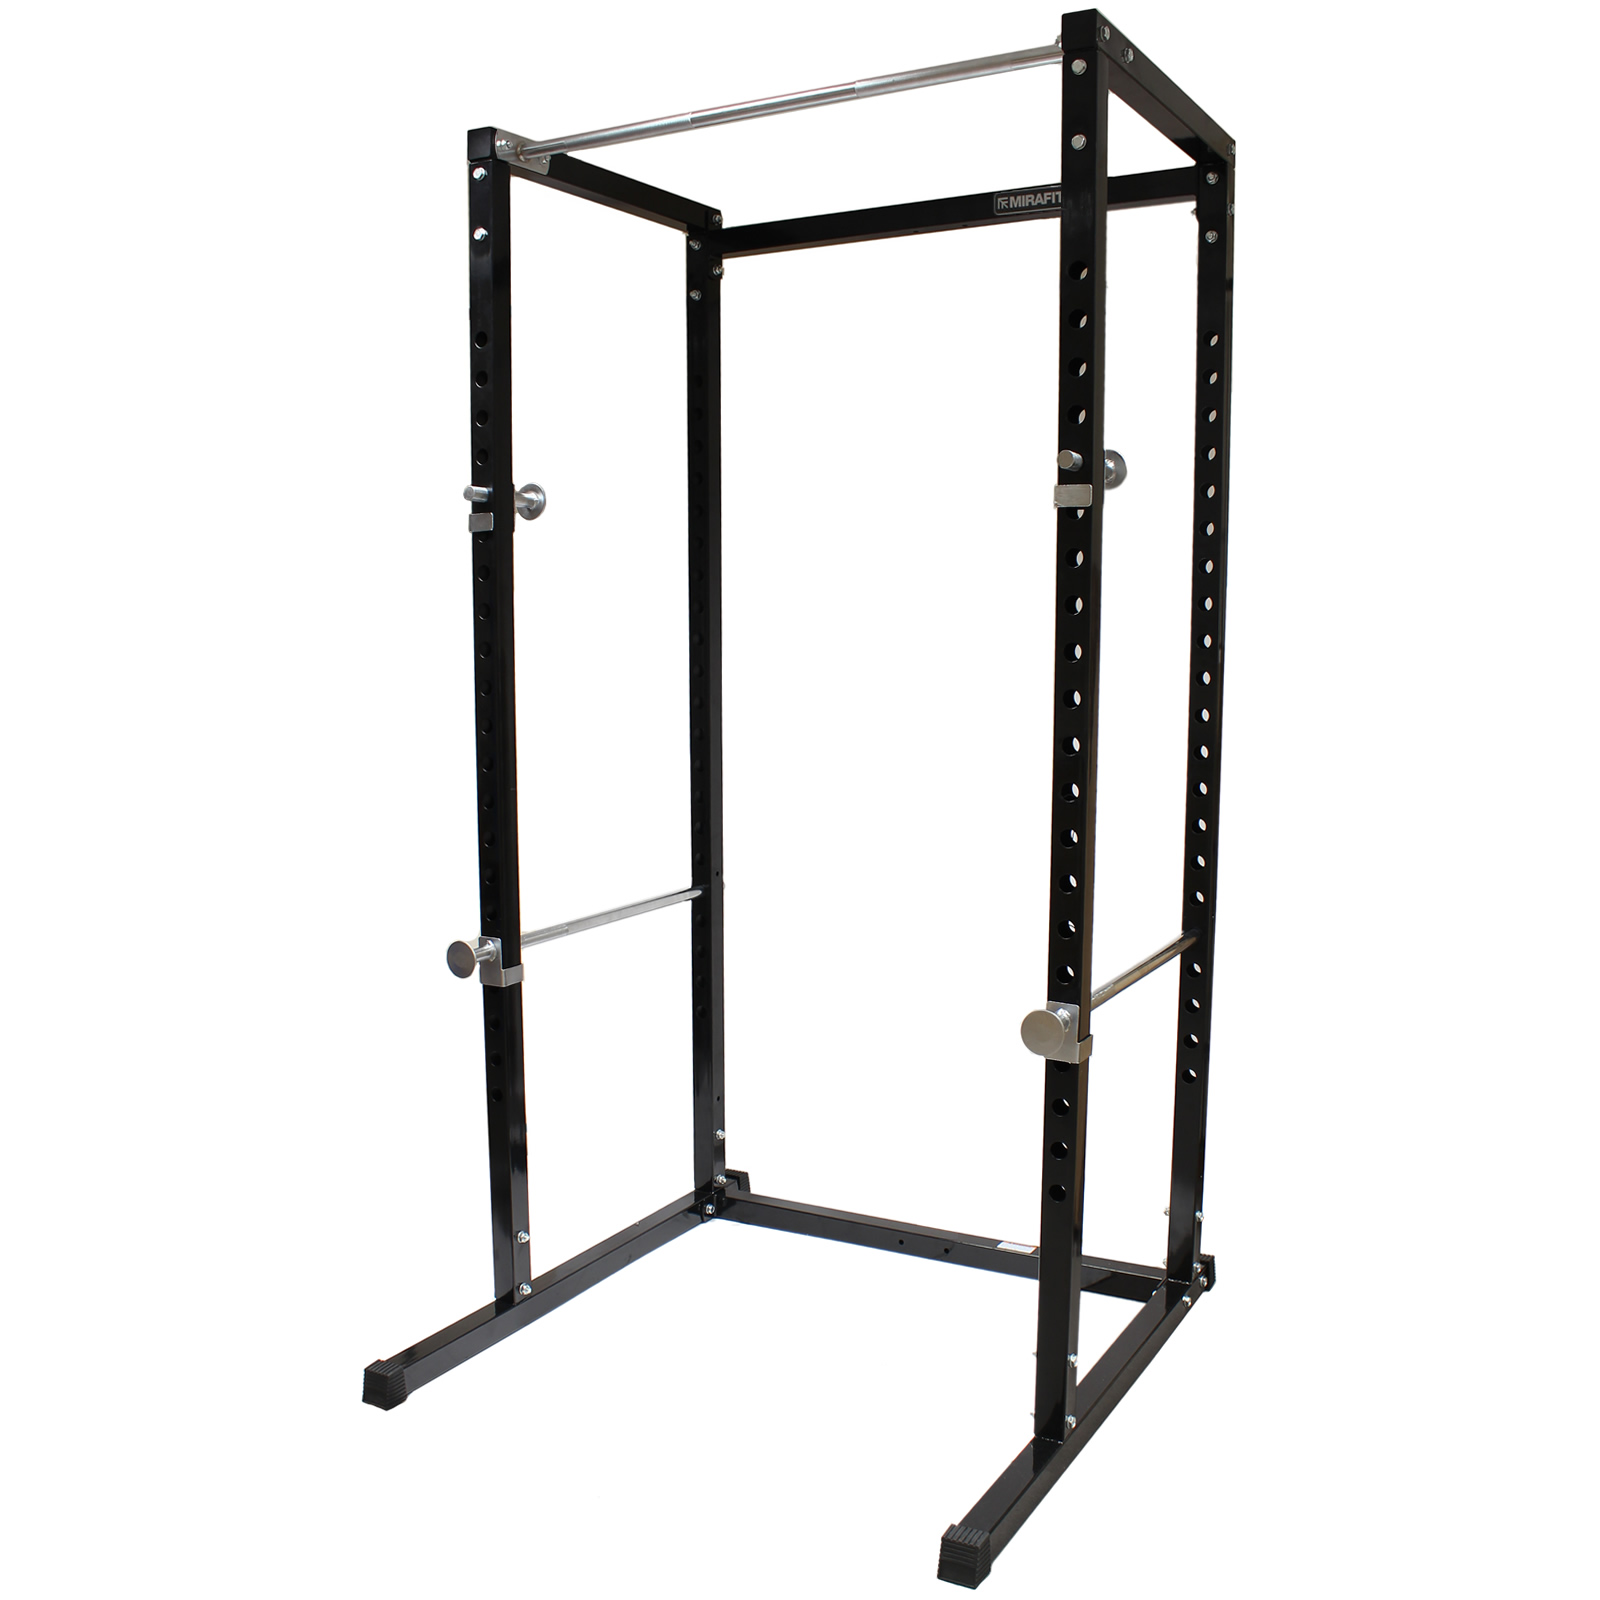 Mirafit Power Cage Squat Rack Pull Up Bar Multi Gym Bench Press Weight Lifting